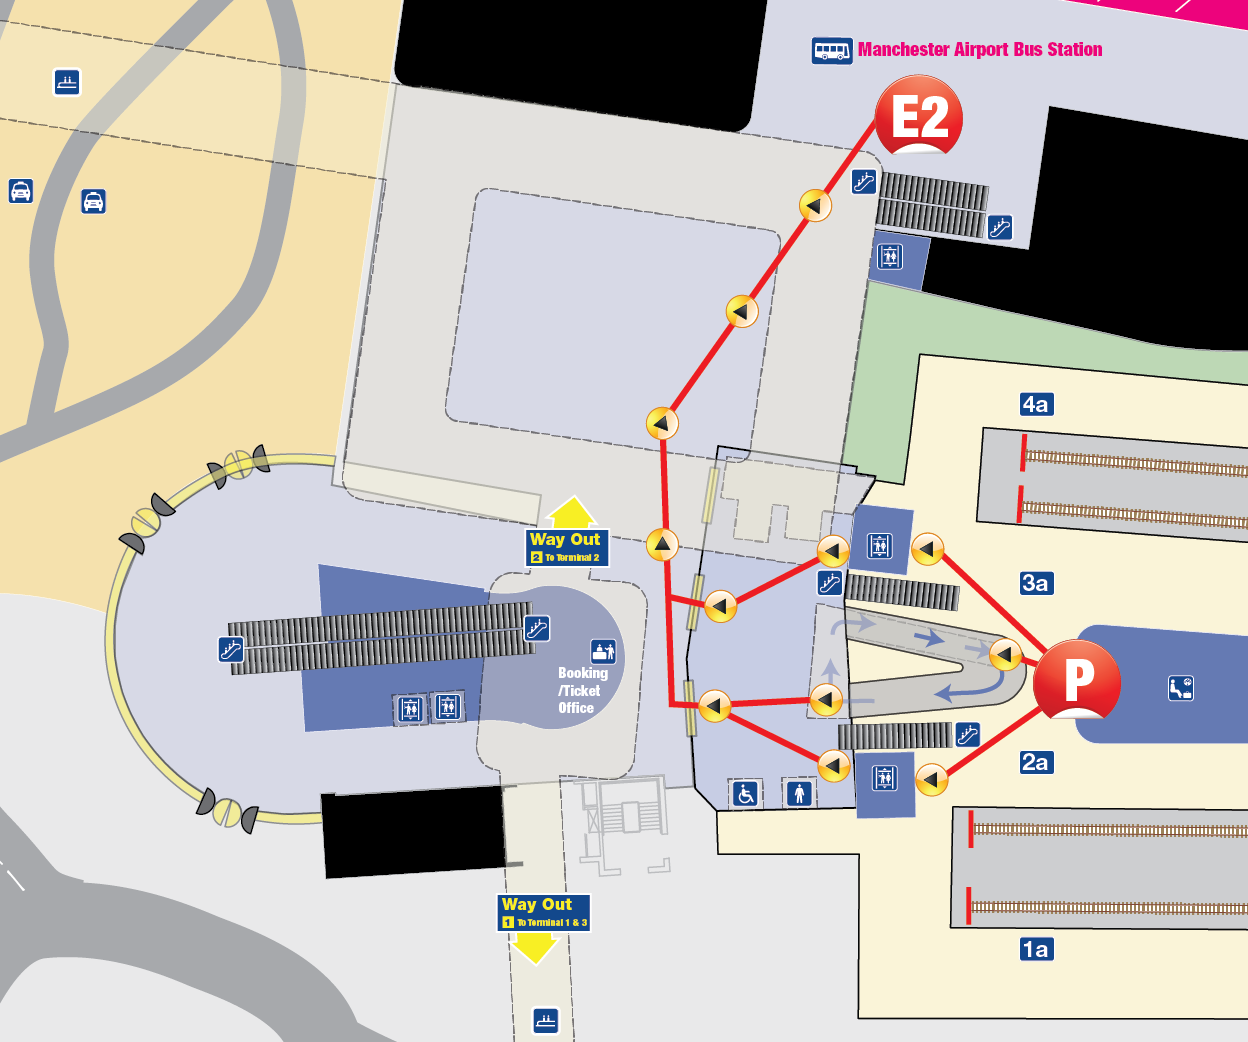 map of manchester airport train station National Rail Enquiries map of manchester airport train station